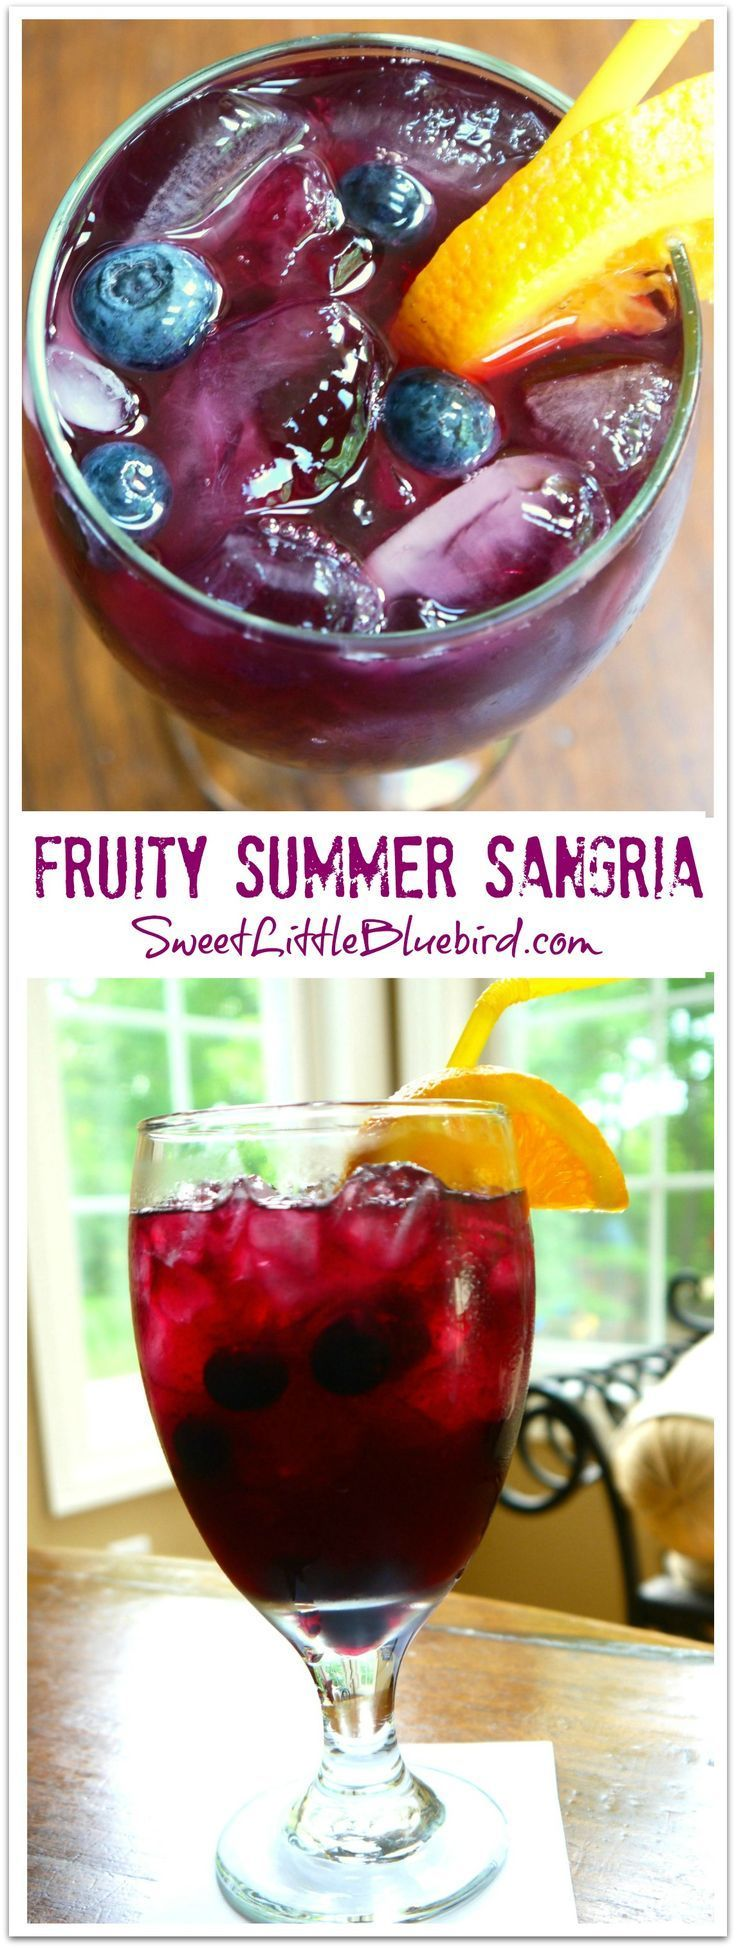 FRUITY SUMMER SANGRIA - Summer in a glass! Perfect for outdoor parties and get-togethers, always a hit! | SweetLittleBluebi...